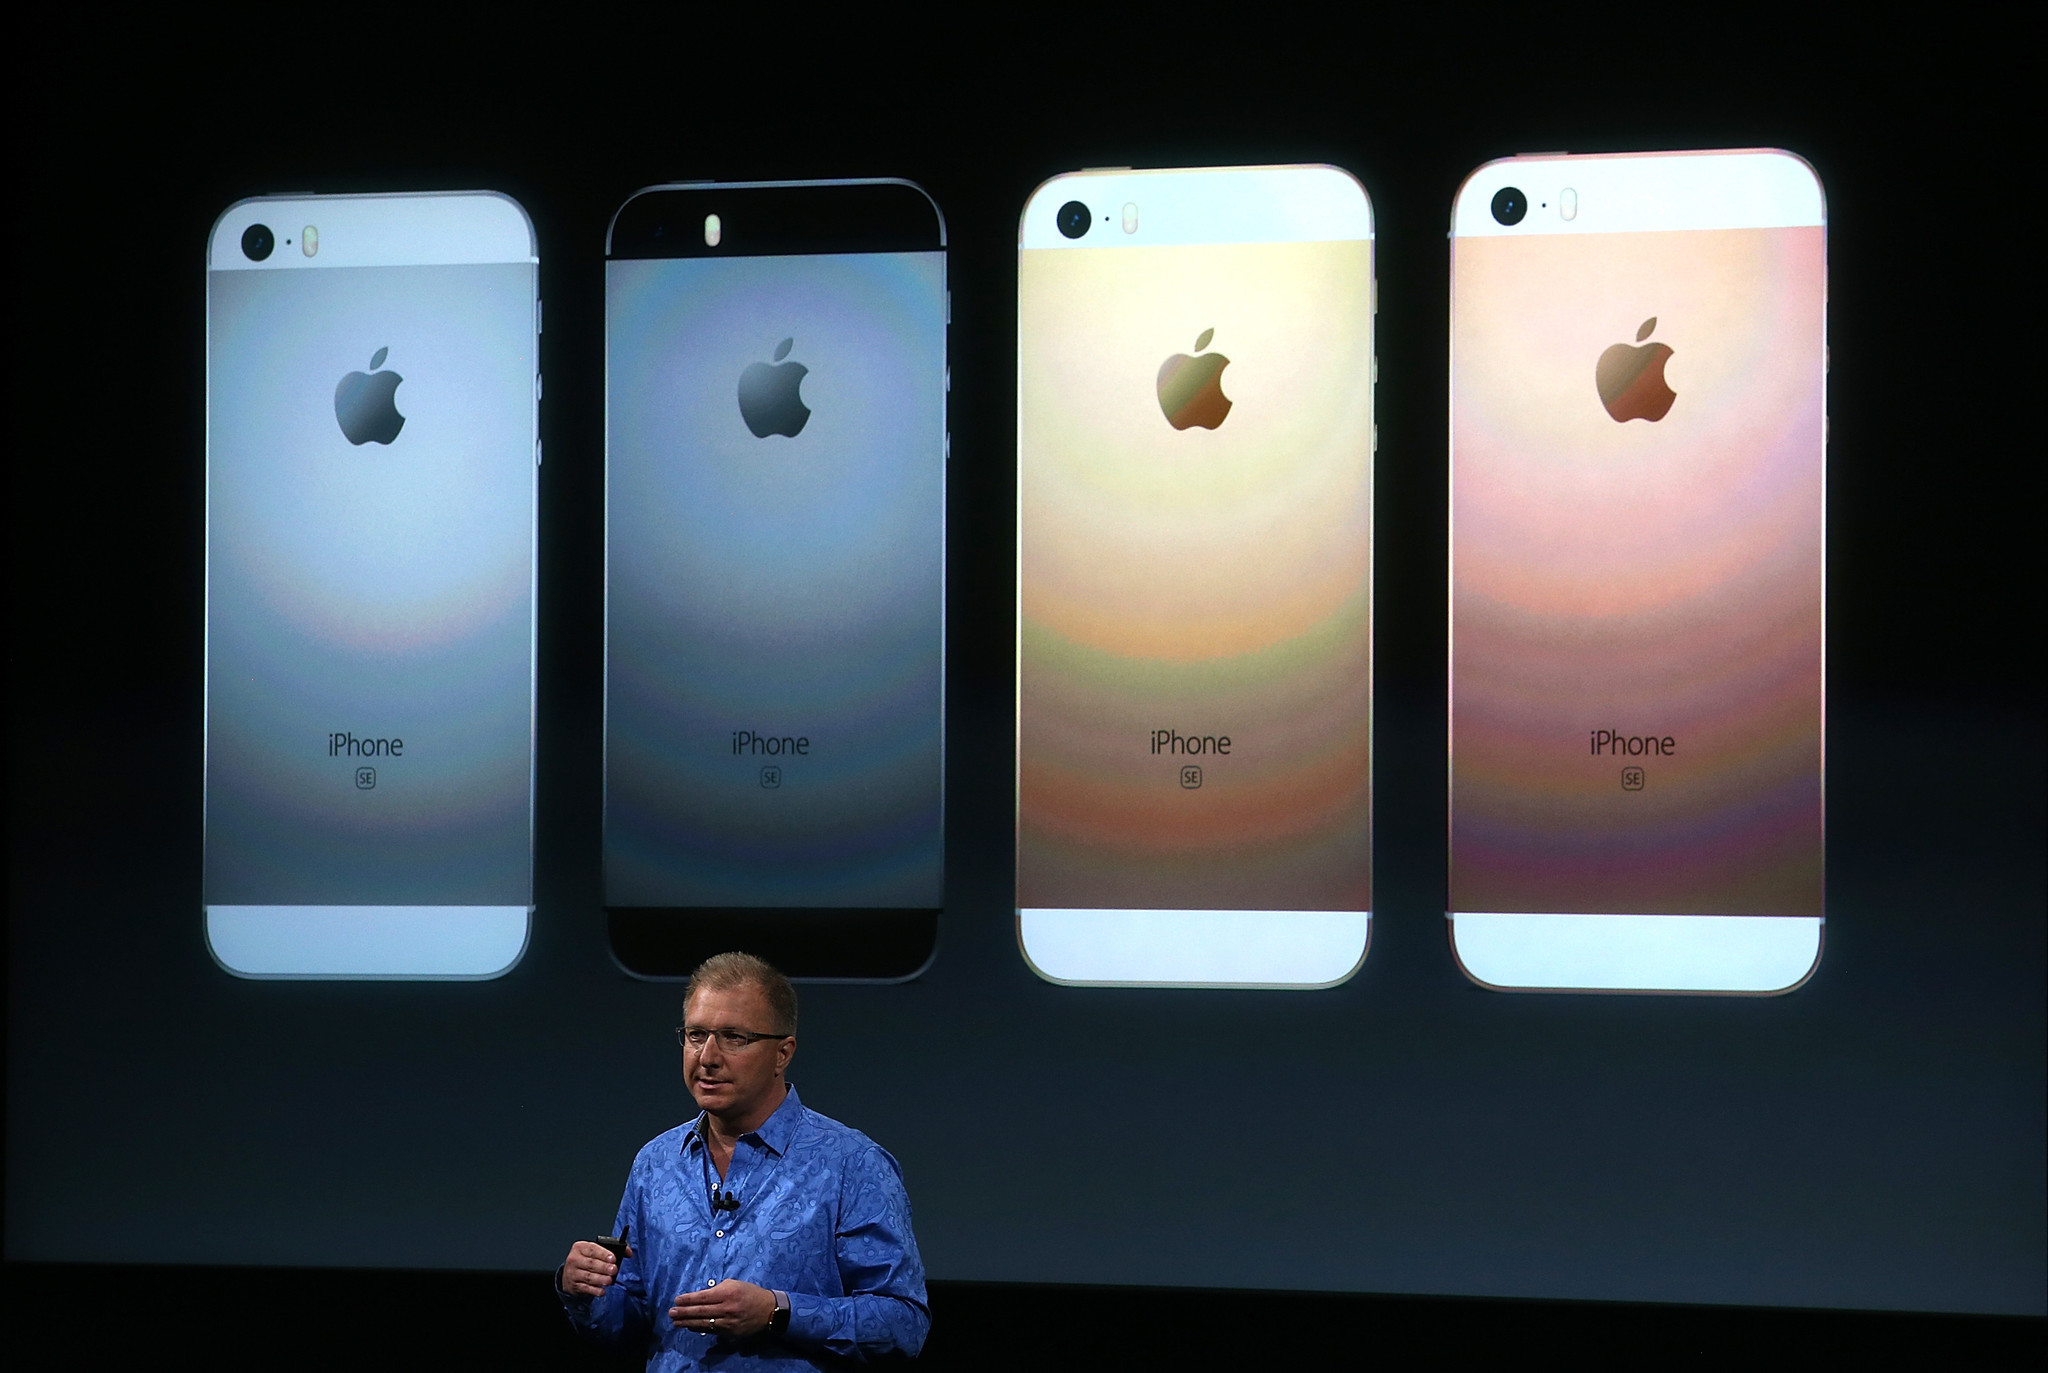 Apple Unveiled A New IPhone And The World Shockingly Yawned